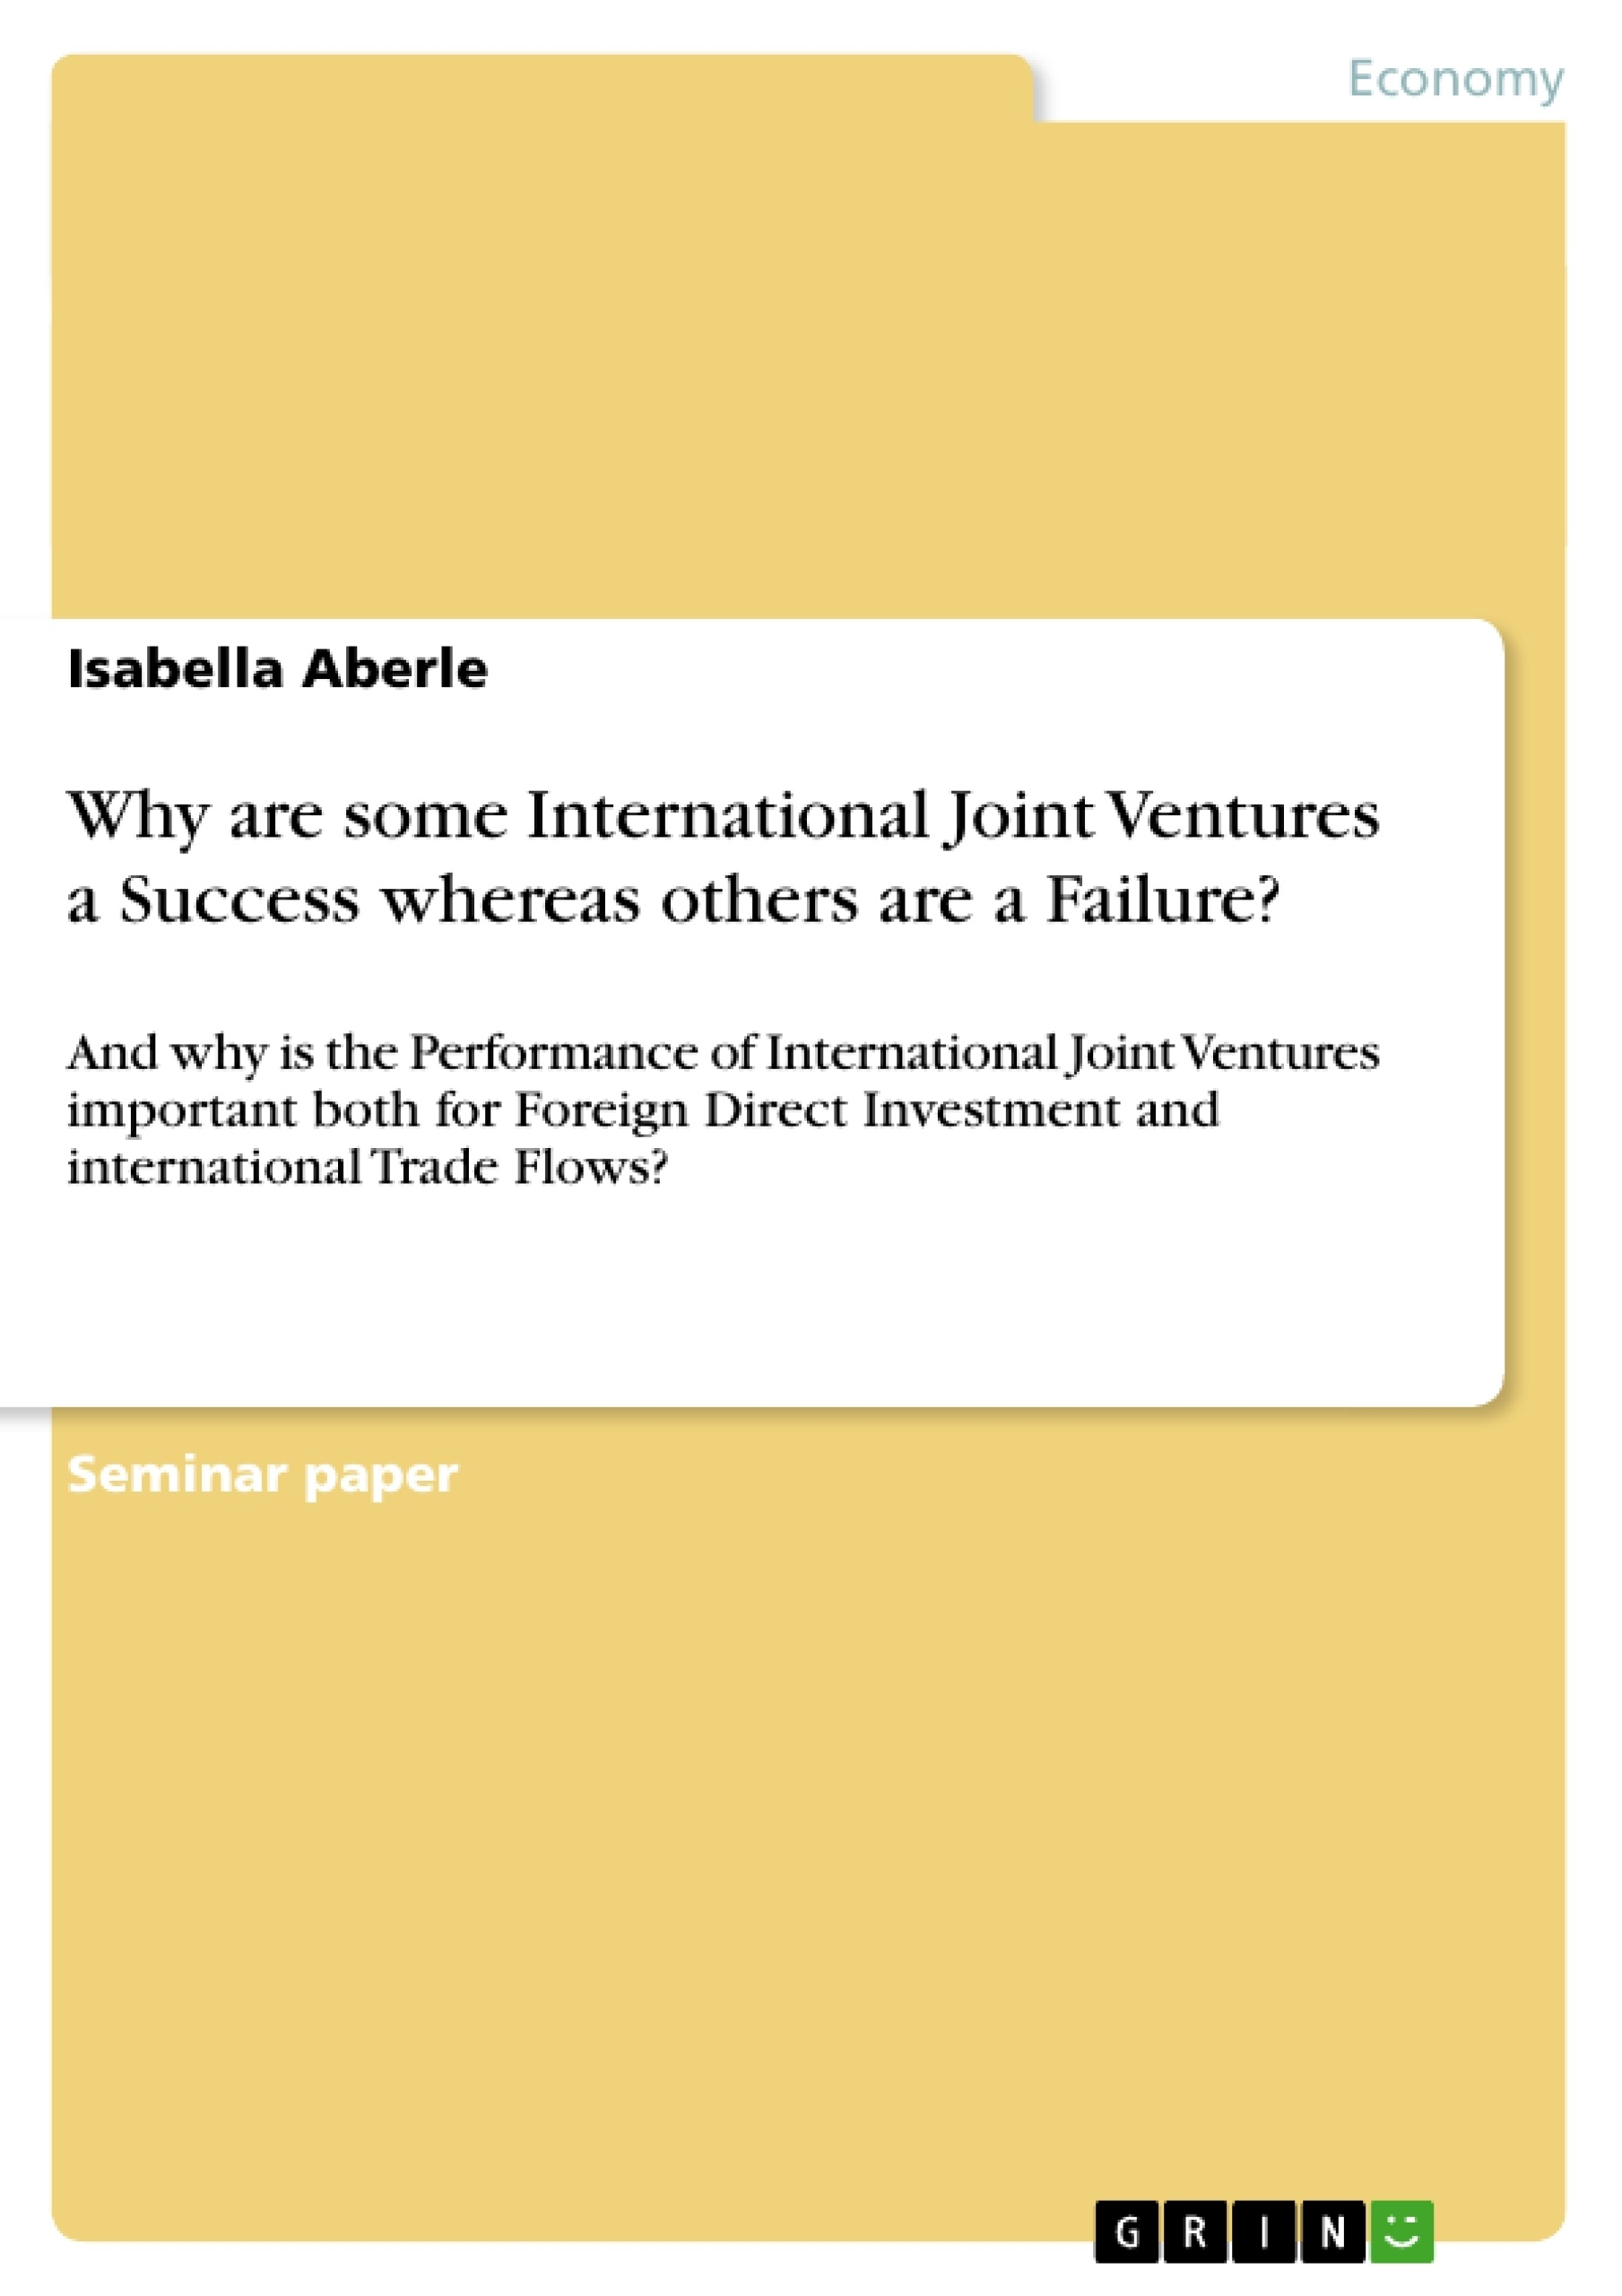 study of international joint ventures management essay International joint venture (ijv) research largely omits social and cognitive   social enactment processes in a british-italian, shared management joint venture.